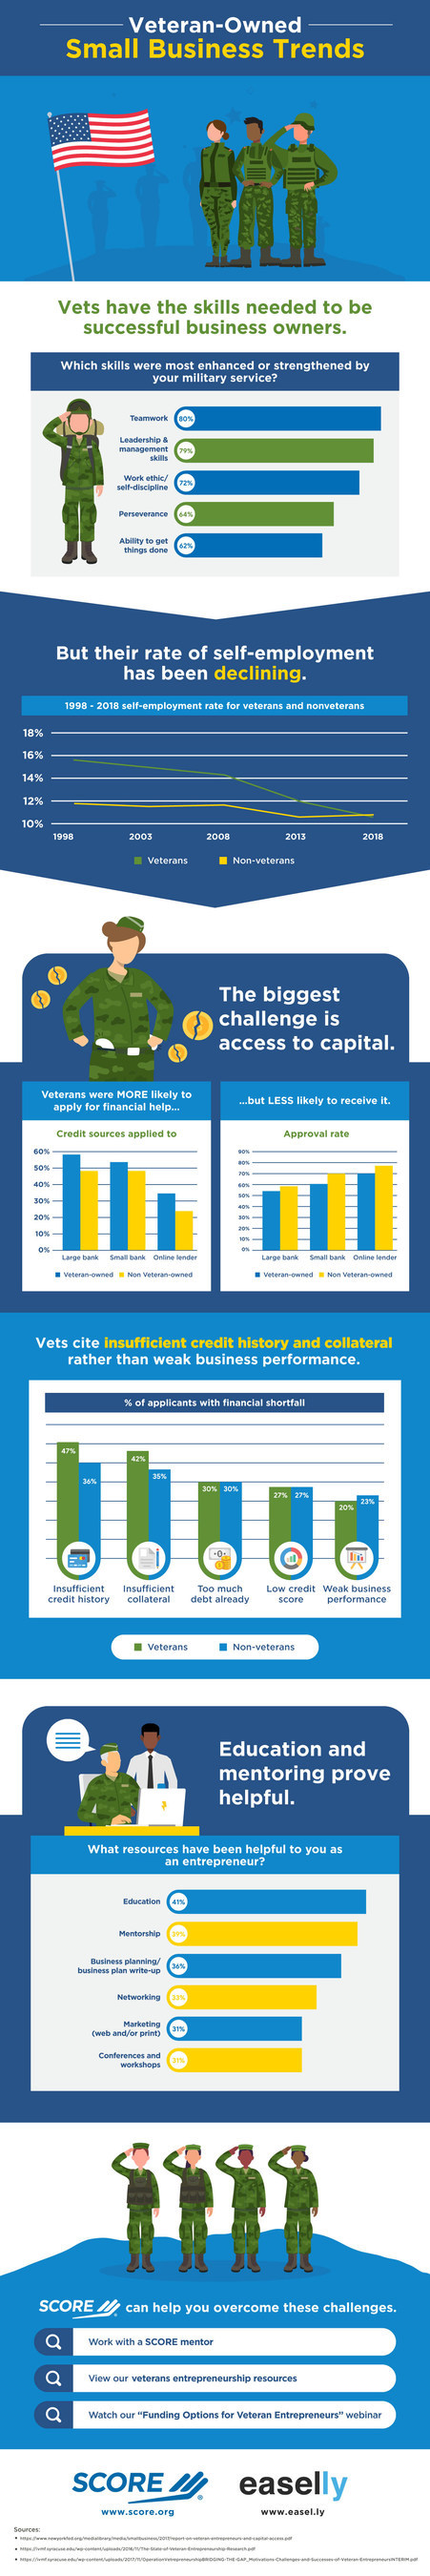 SCORE infographic highlights veteran small business owner skills and challenges; sponsored by Easel.ly